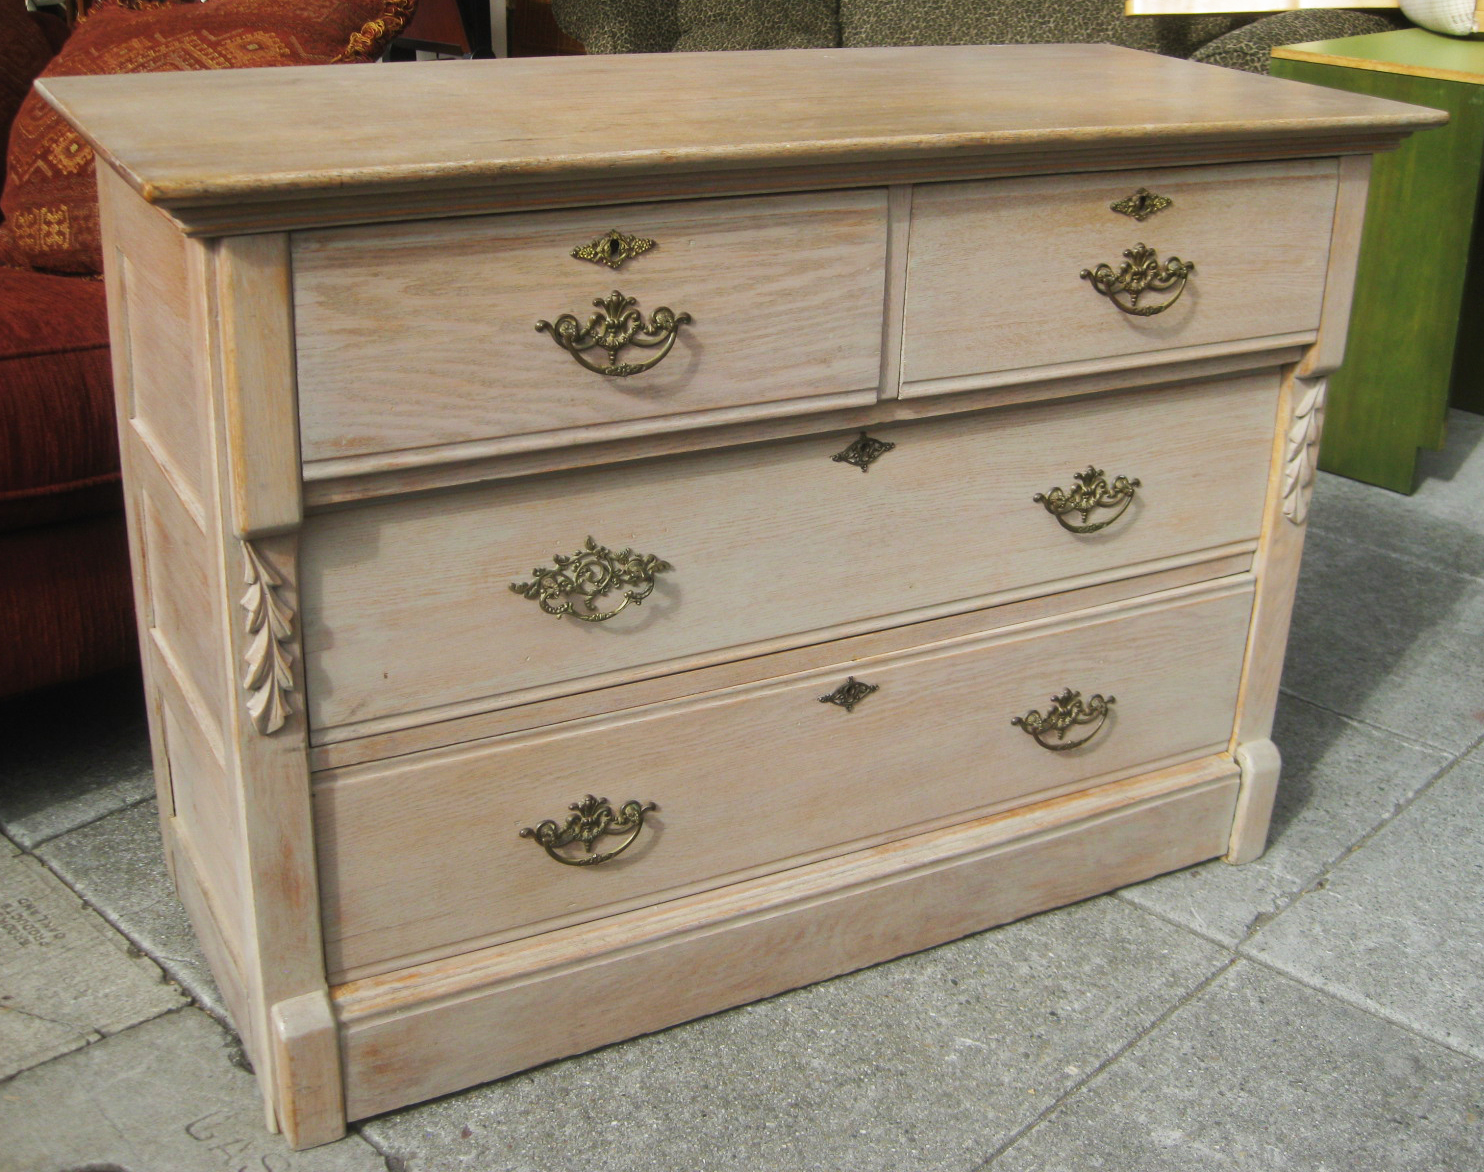 UHURU FURNITURE & COLLECTIBLES: SOLD - White Washed Oak Dresser - $90